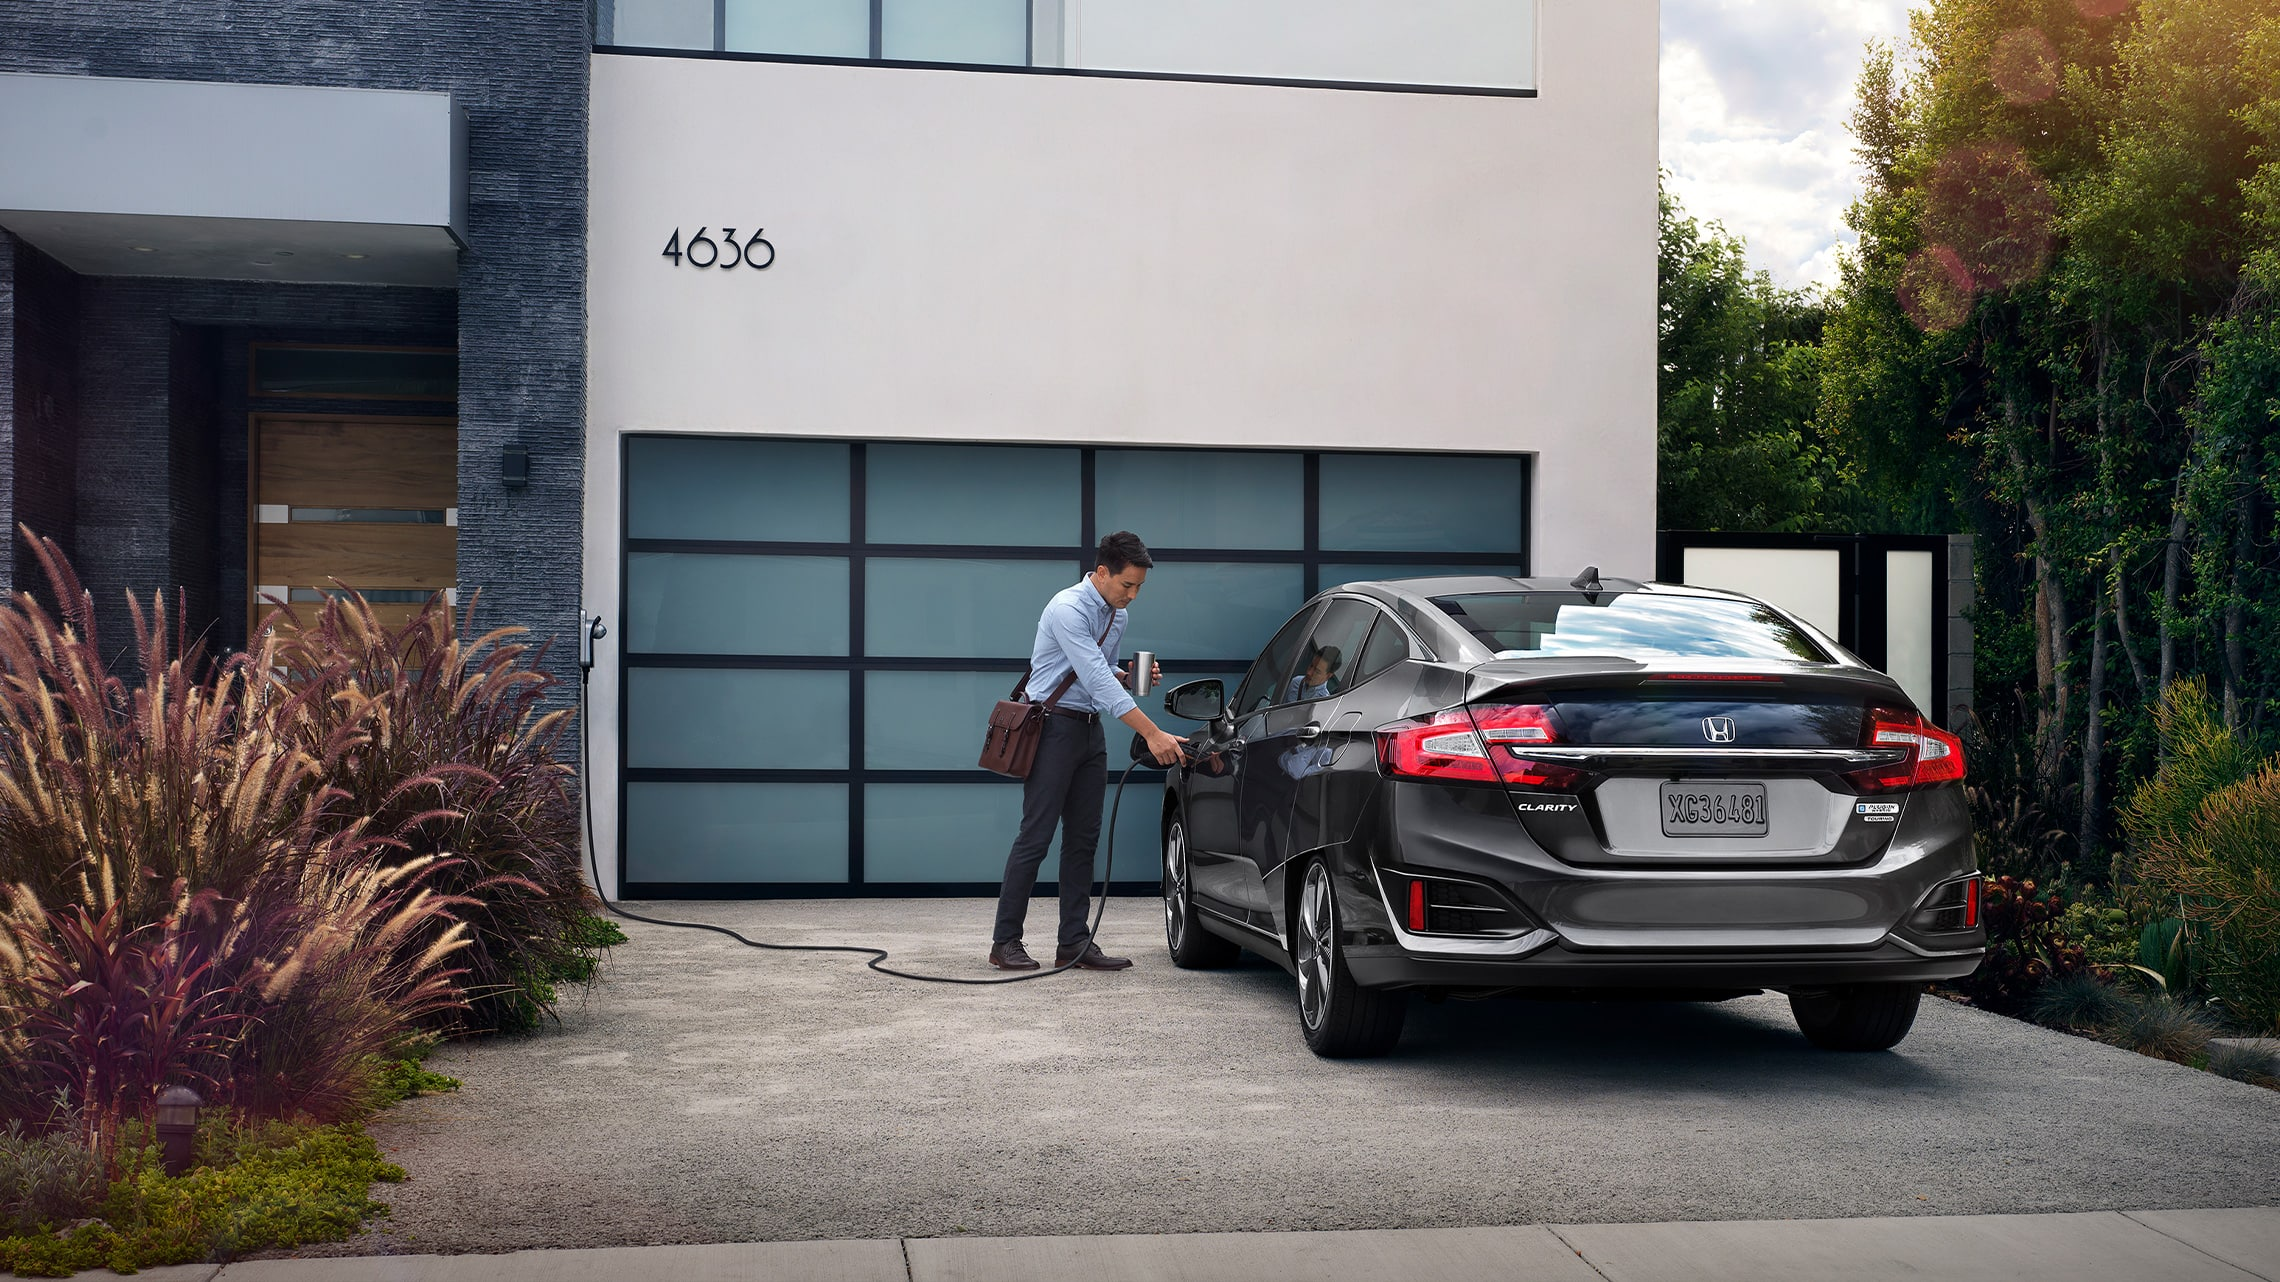 2021 Clarity Plug-In Hybrid being charged outside residence.